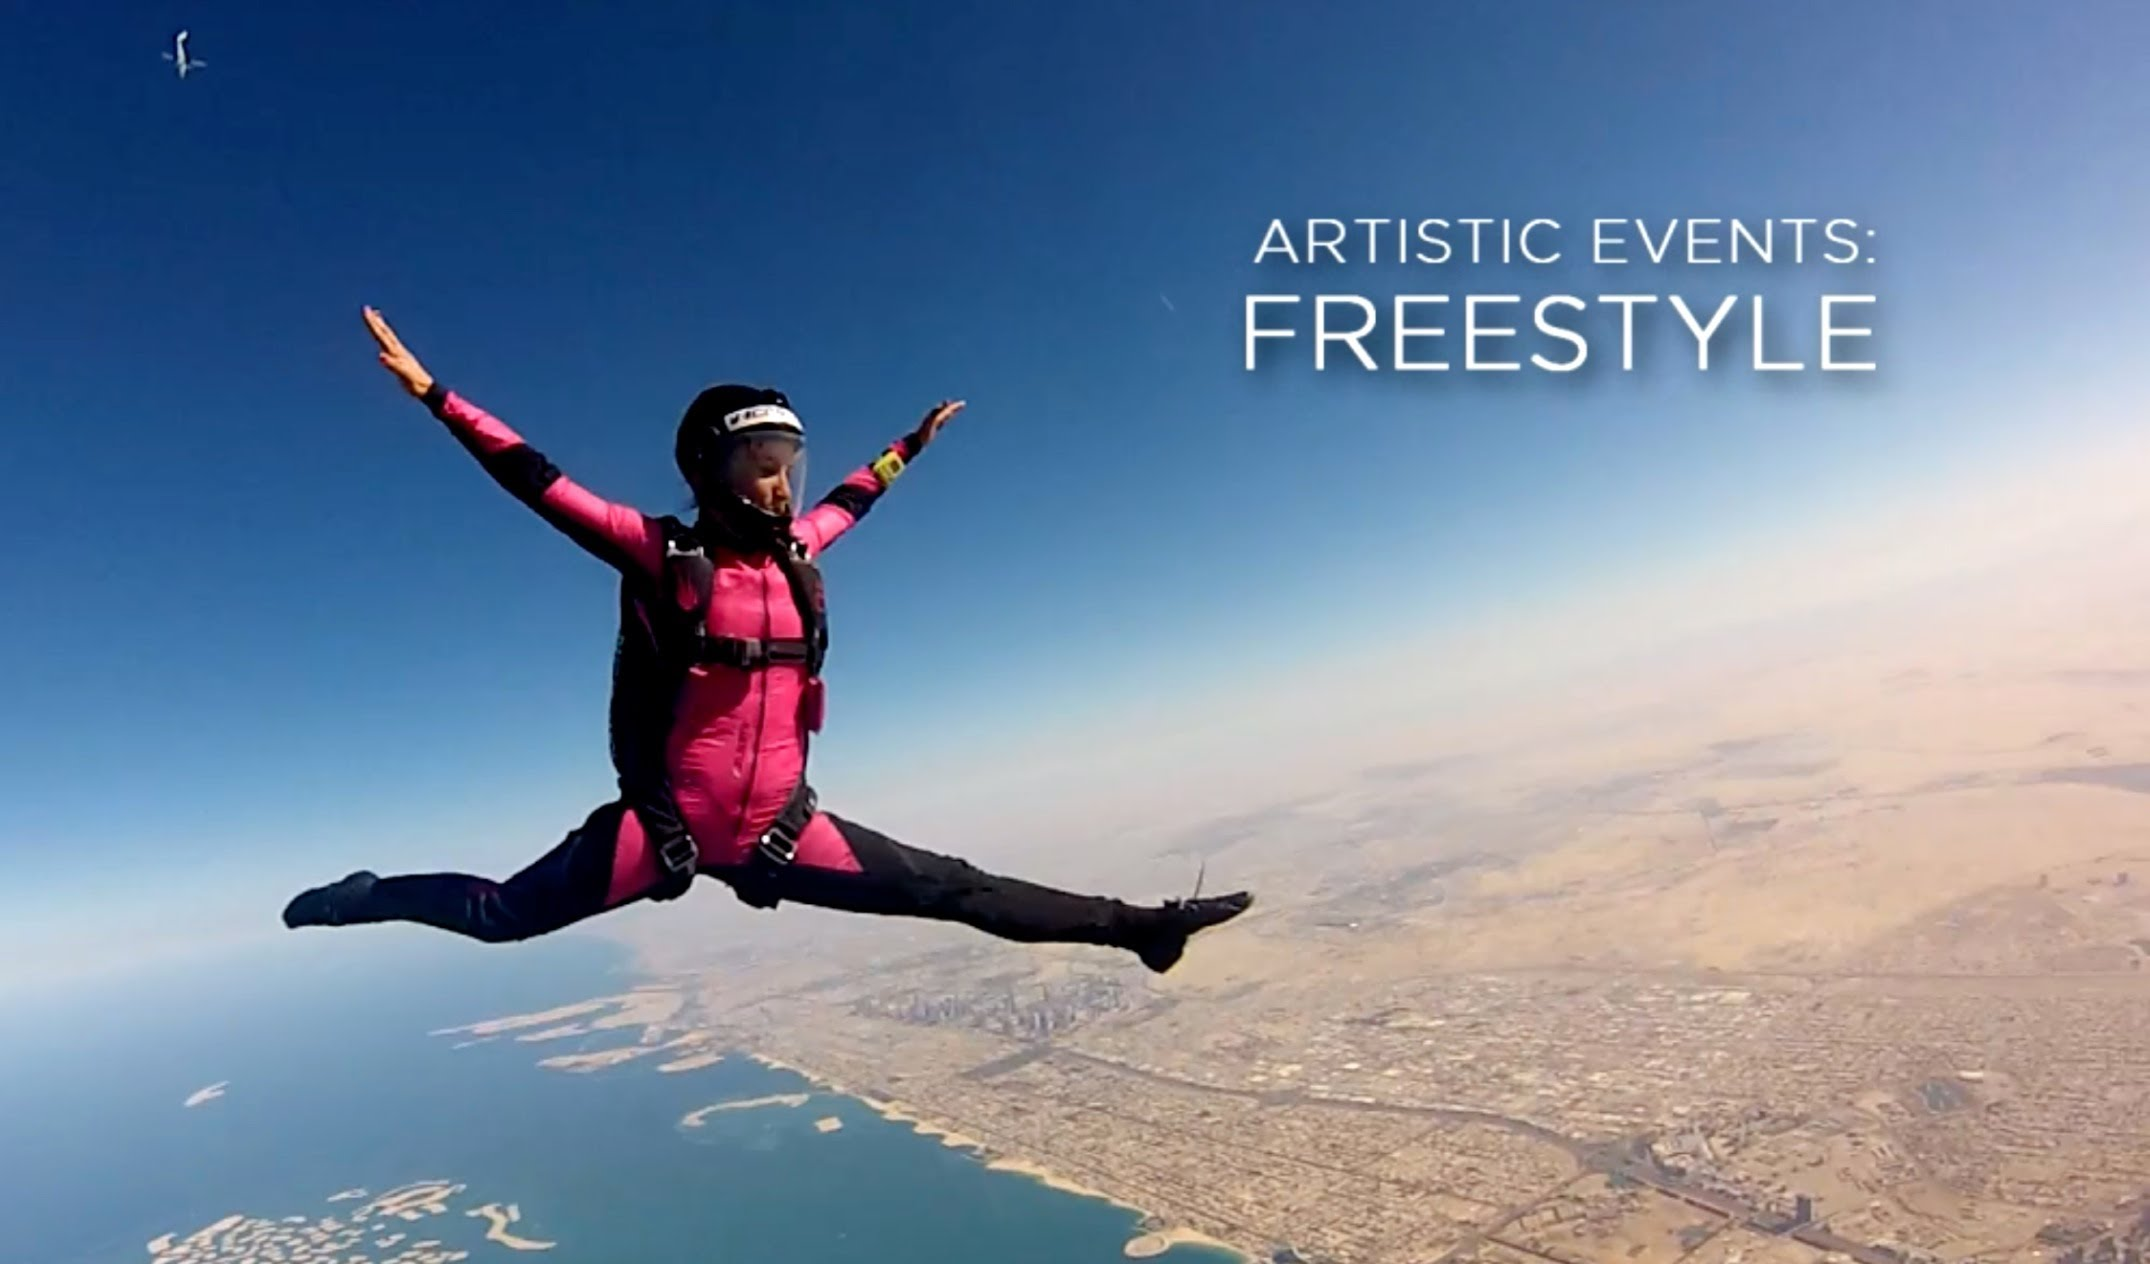 freestyle skydiving